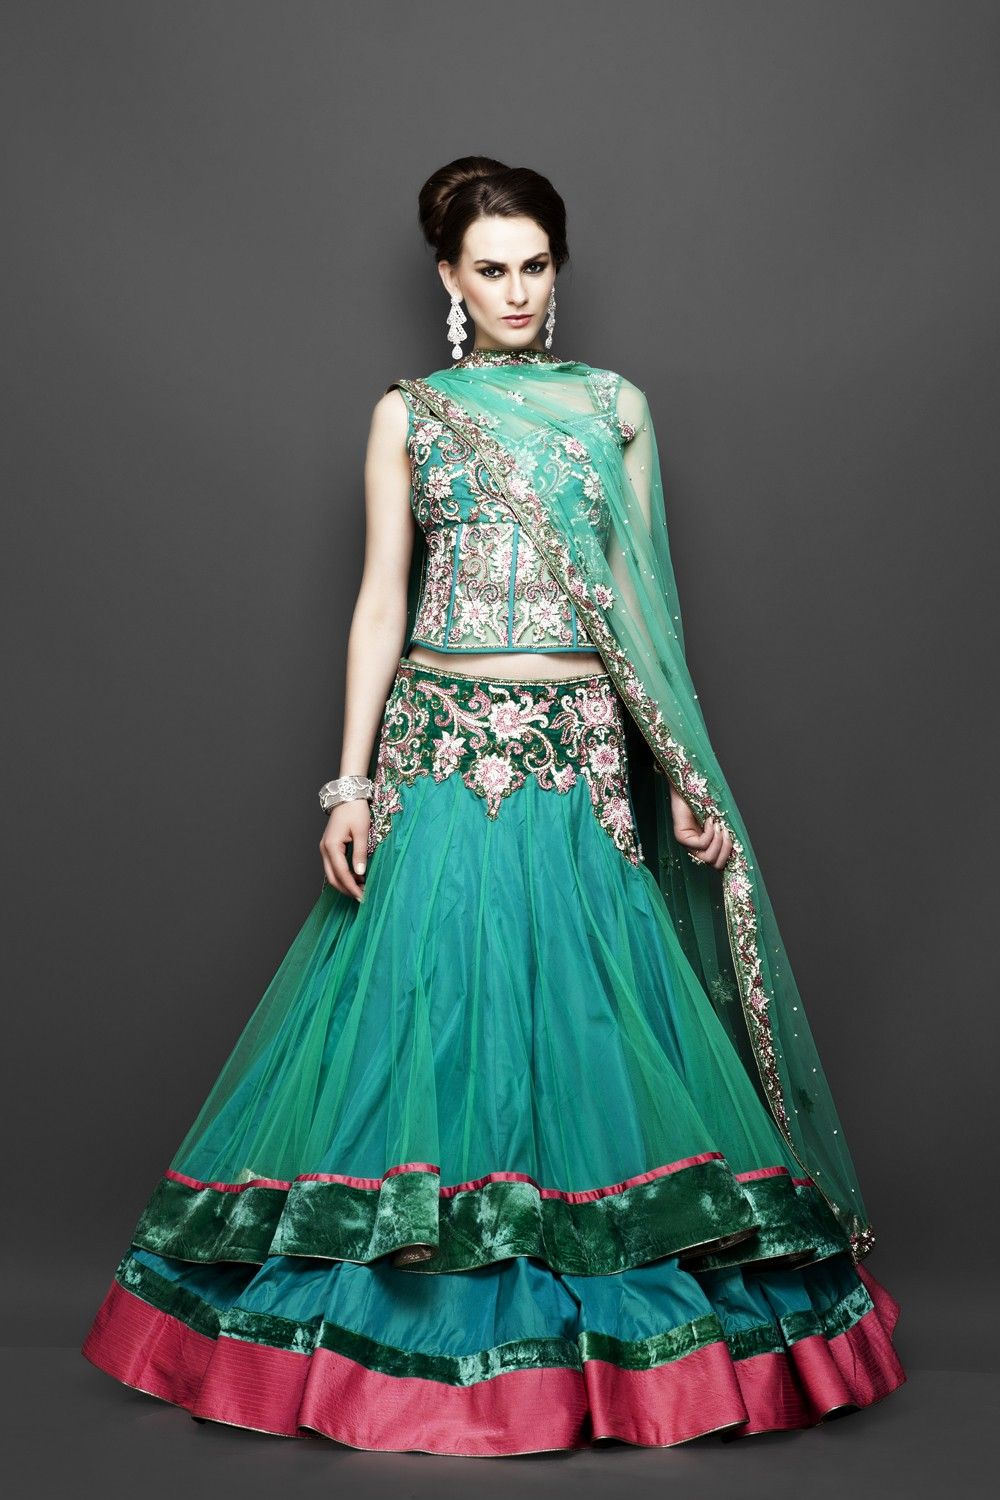 Party Wear Green outfit with Stylish Corset | Desi Fashion ...